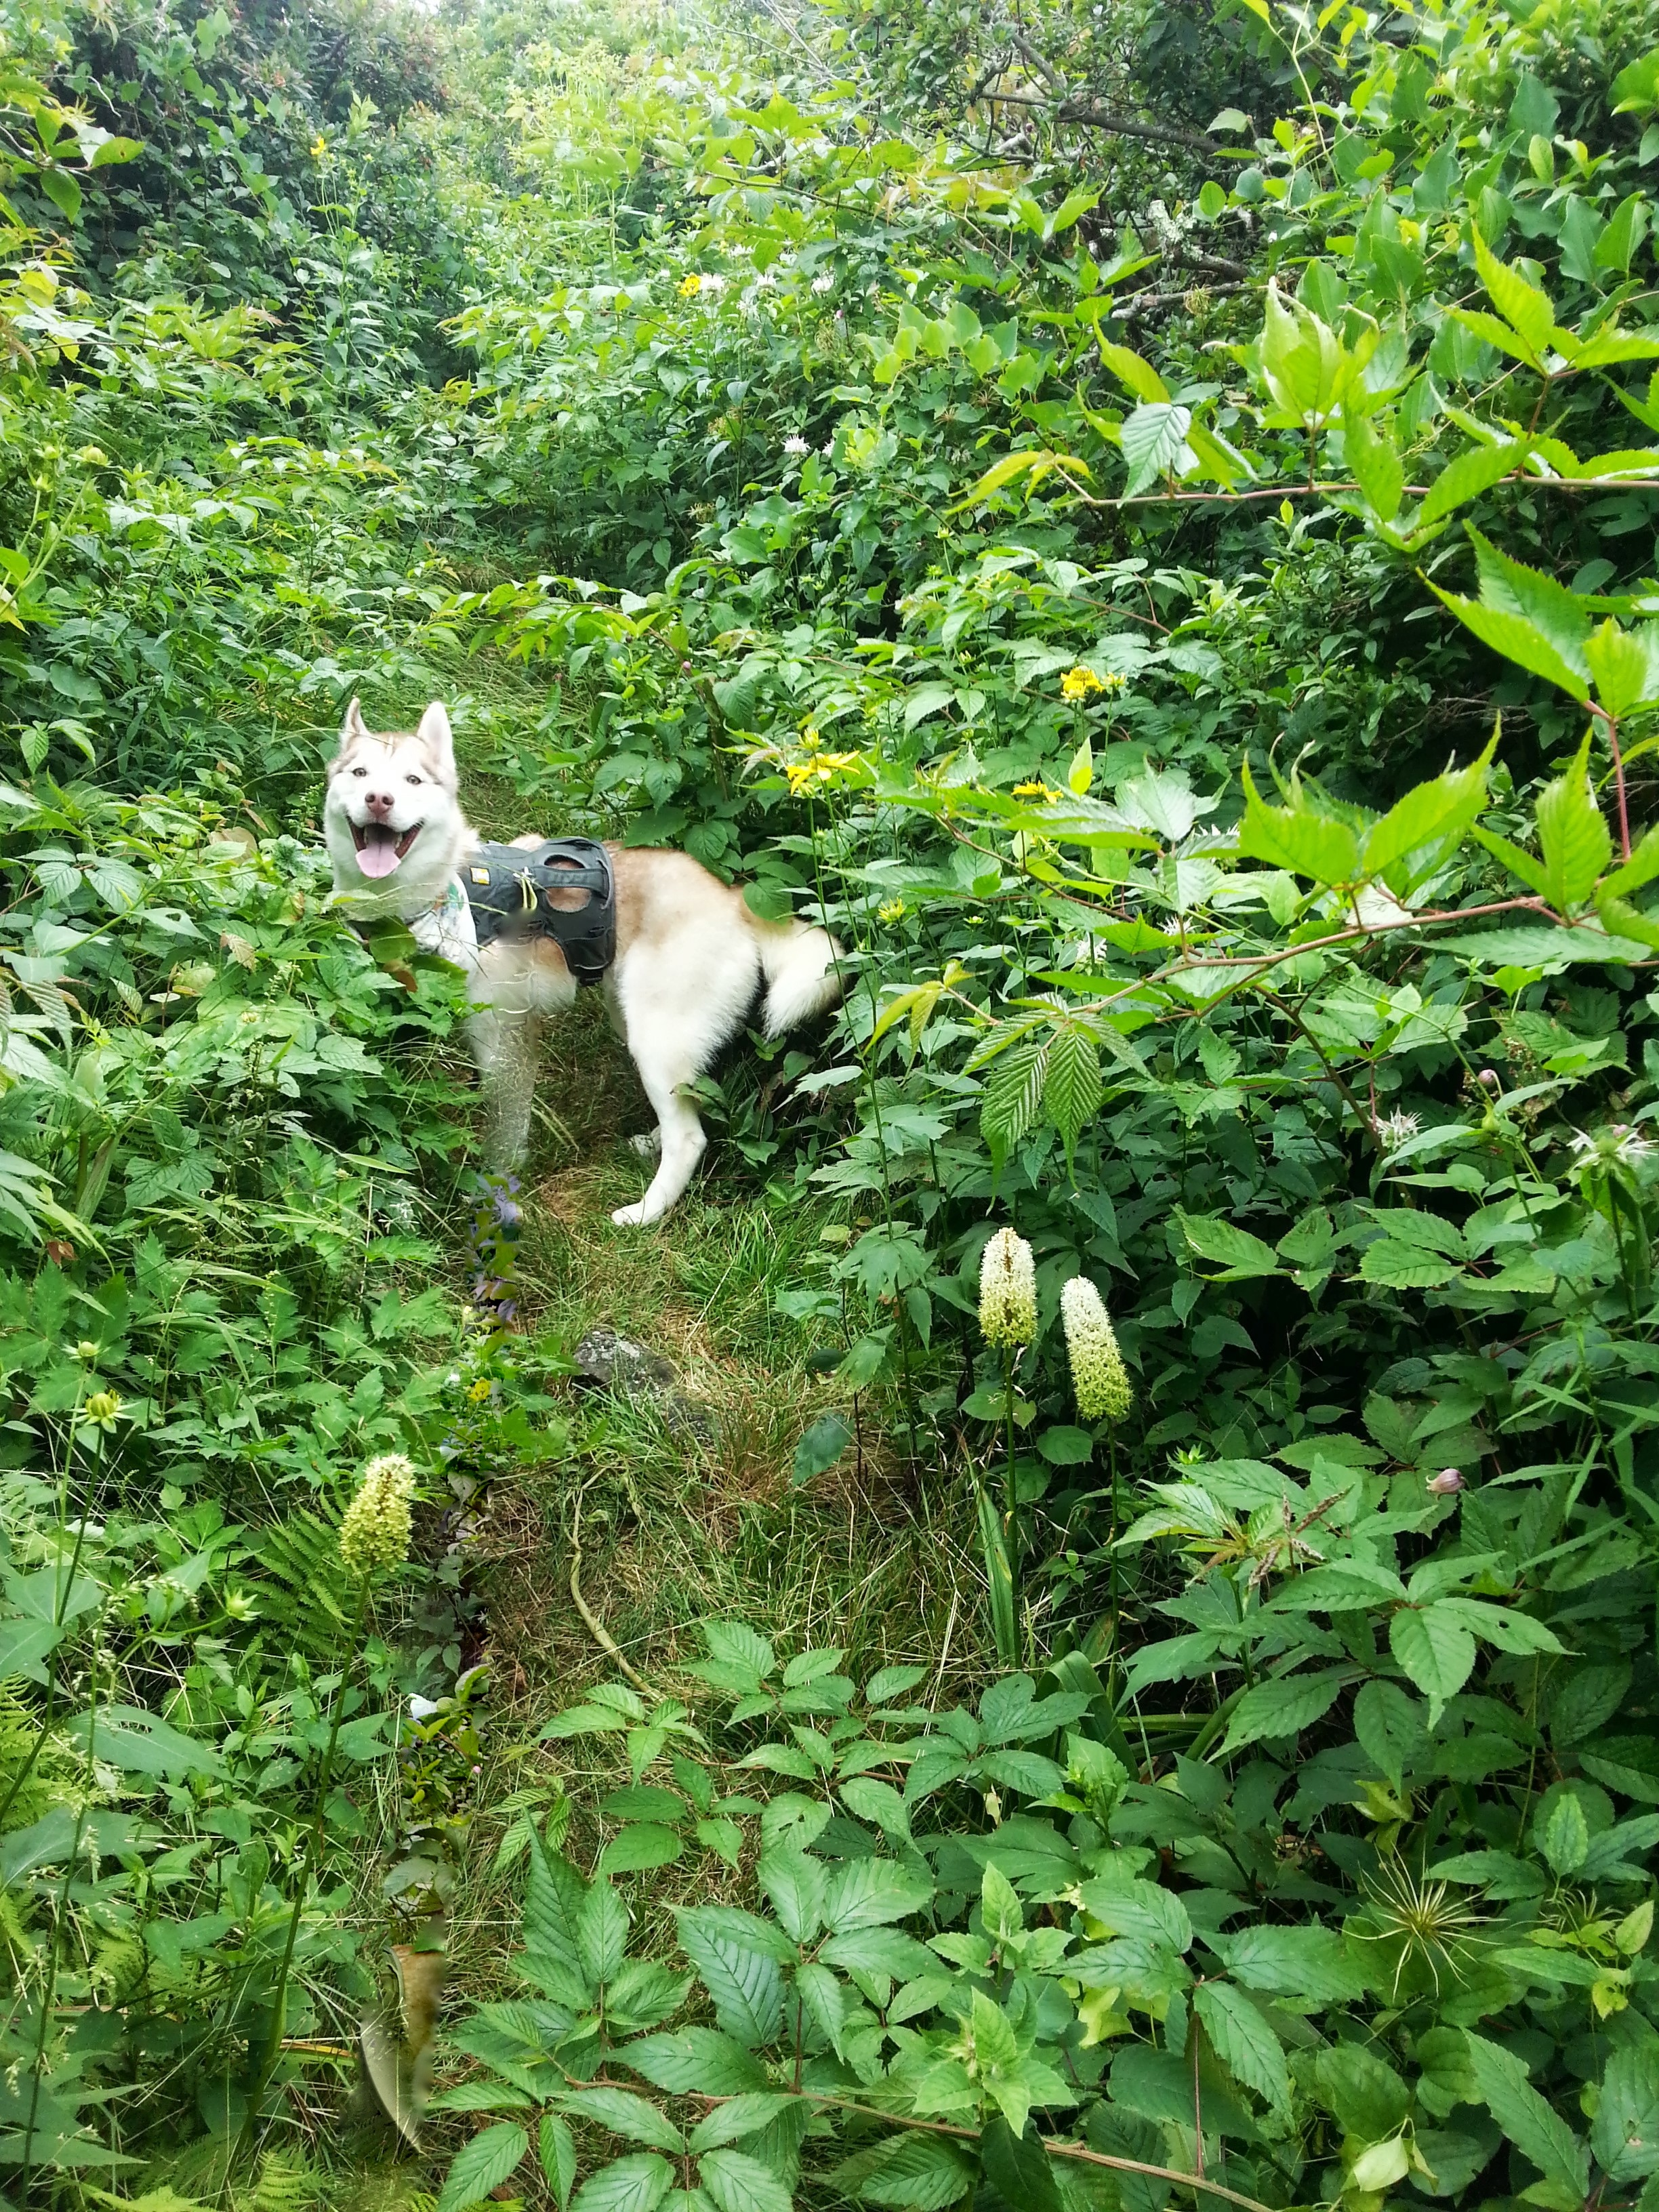 The trail was badly overgrown and at times plant tendrils seemed to reach out and swallow Ryder.